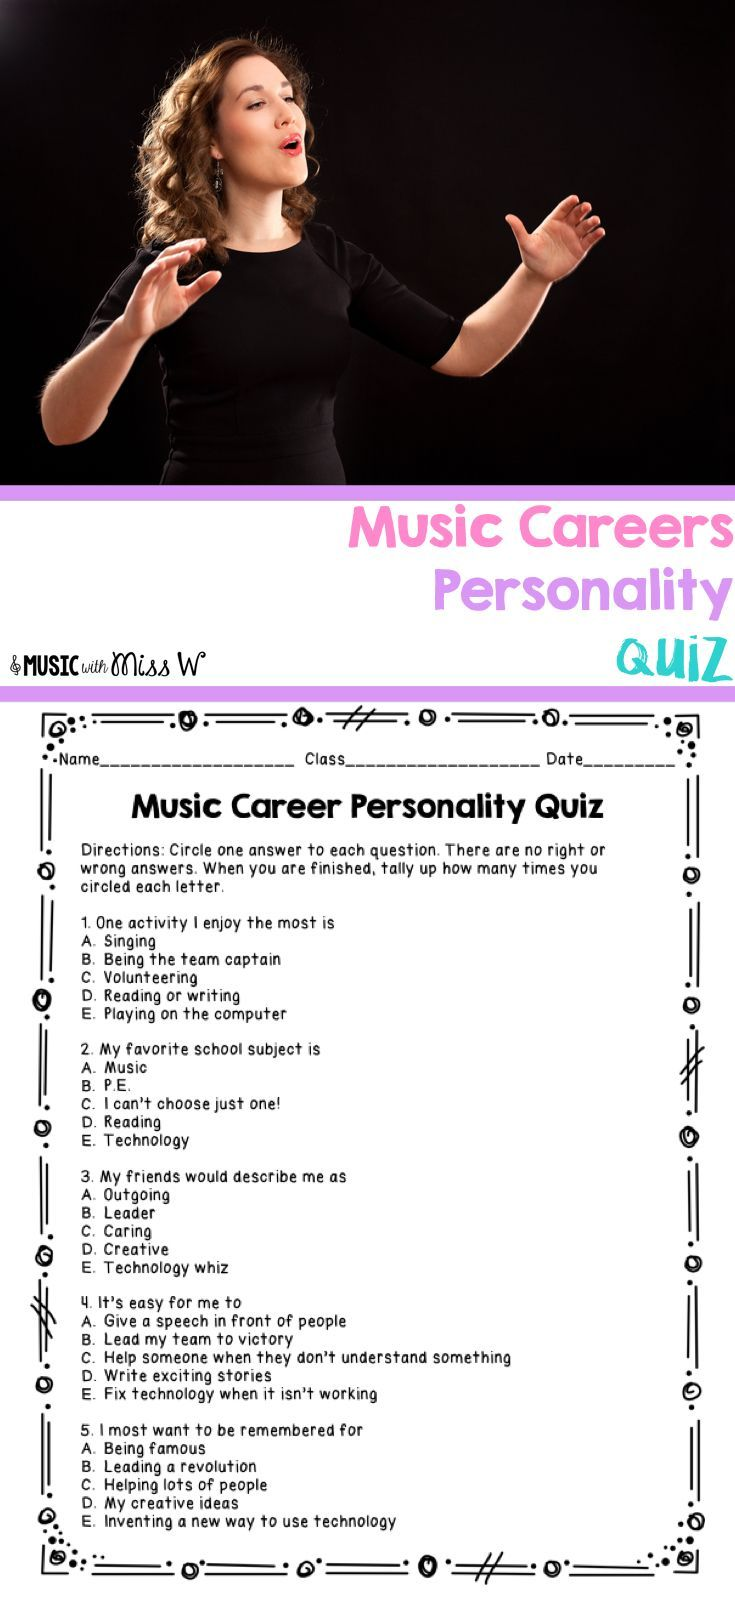 music careers personality quiz - Looking For New Career Ideas Try These New Career Options